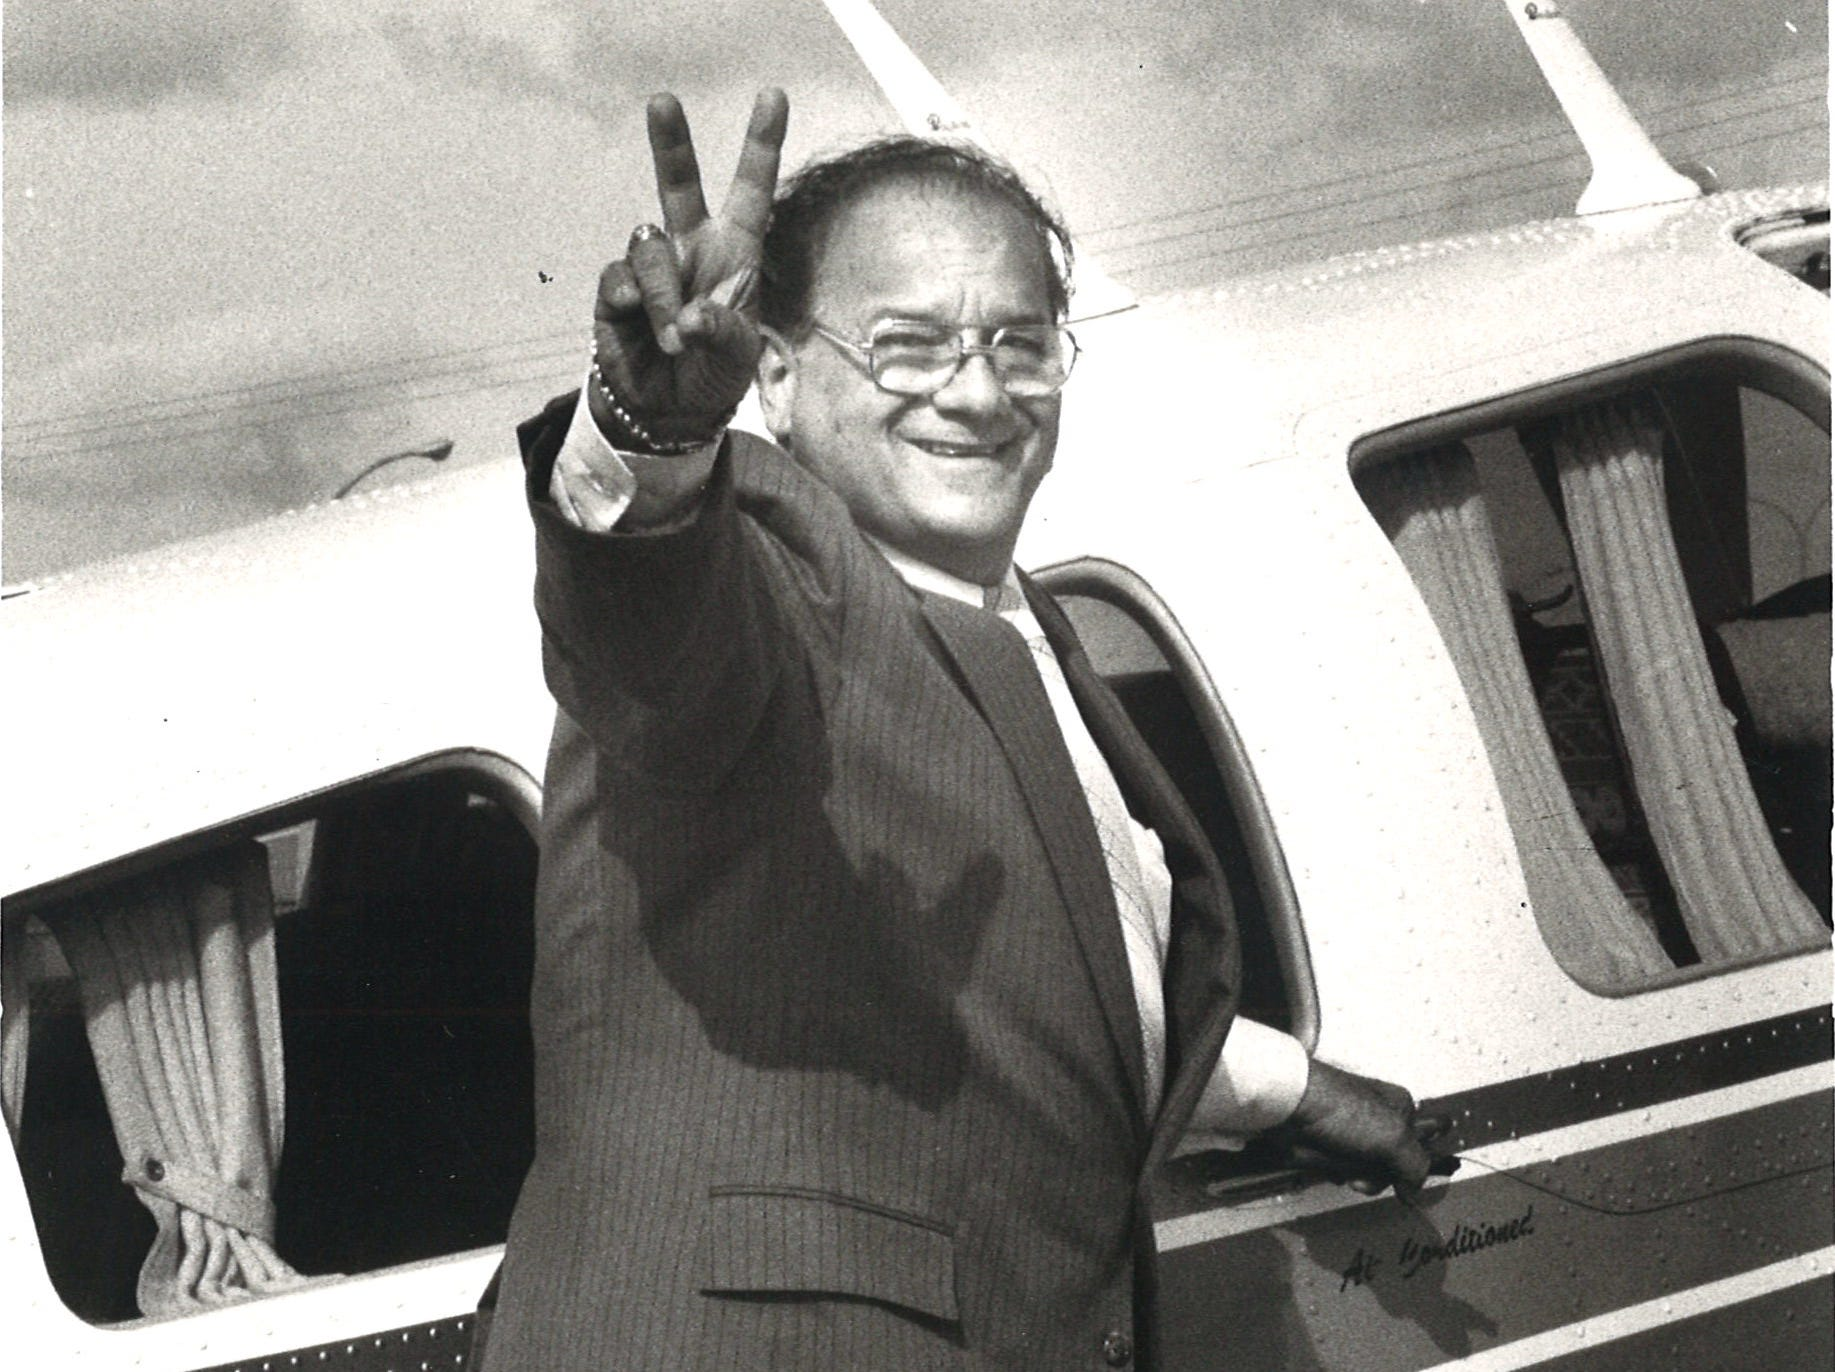 Joe Salem at Corpus Christi International Airport June 5, 1982 while campaigning for the 27th District seat.